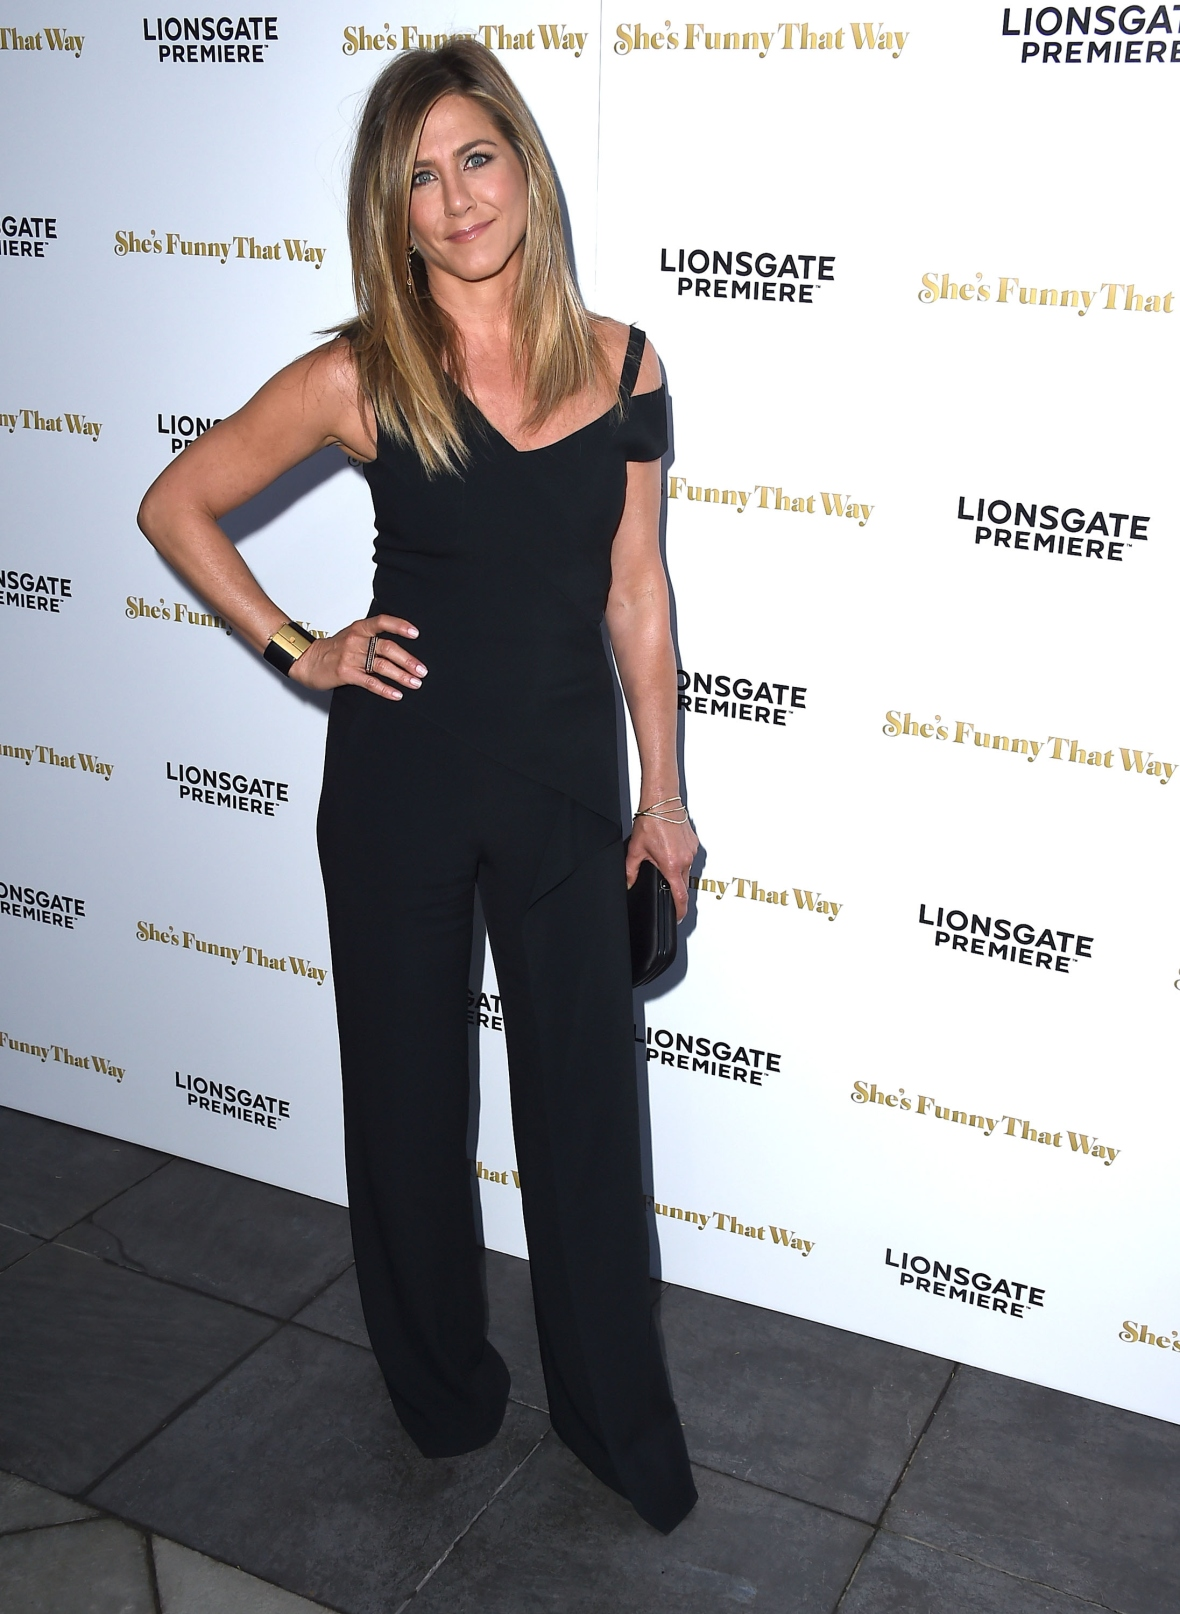 jennifer aniston (getty images)